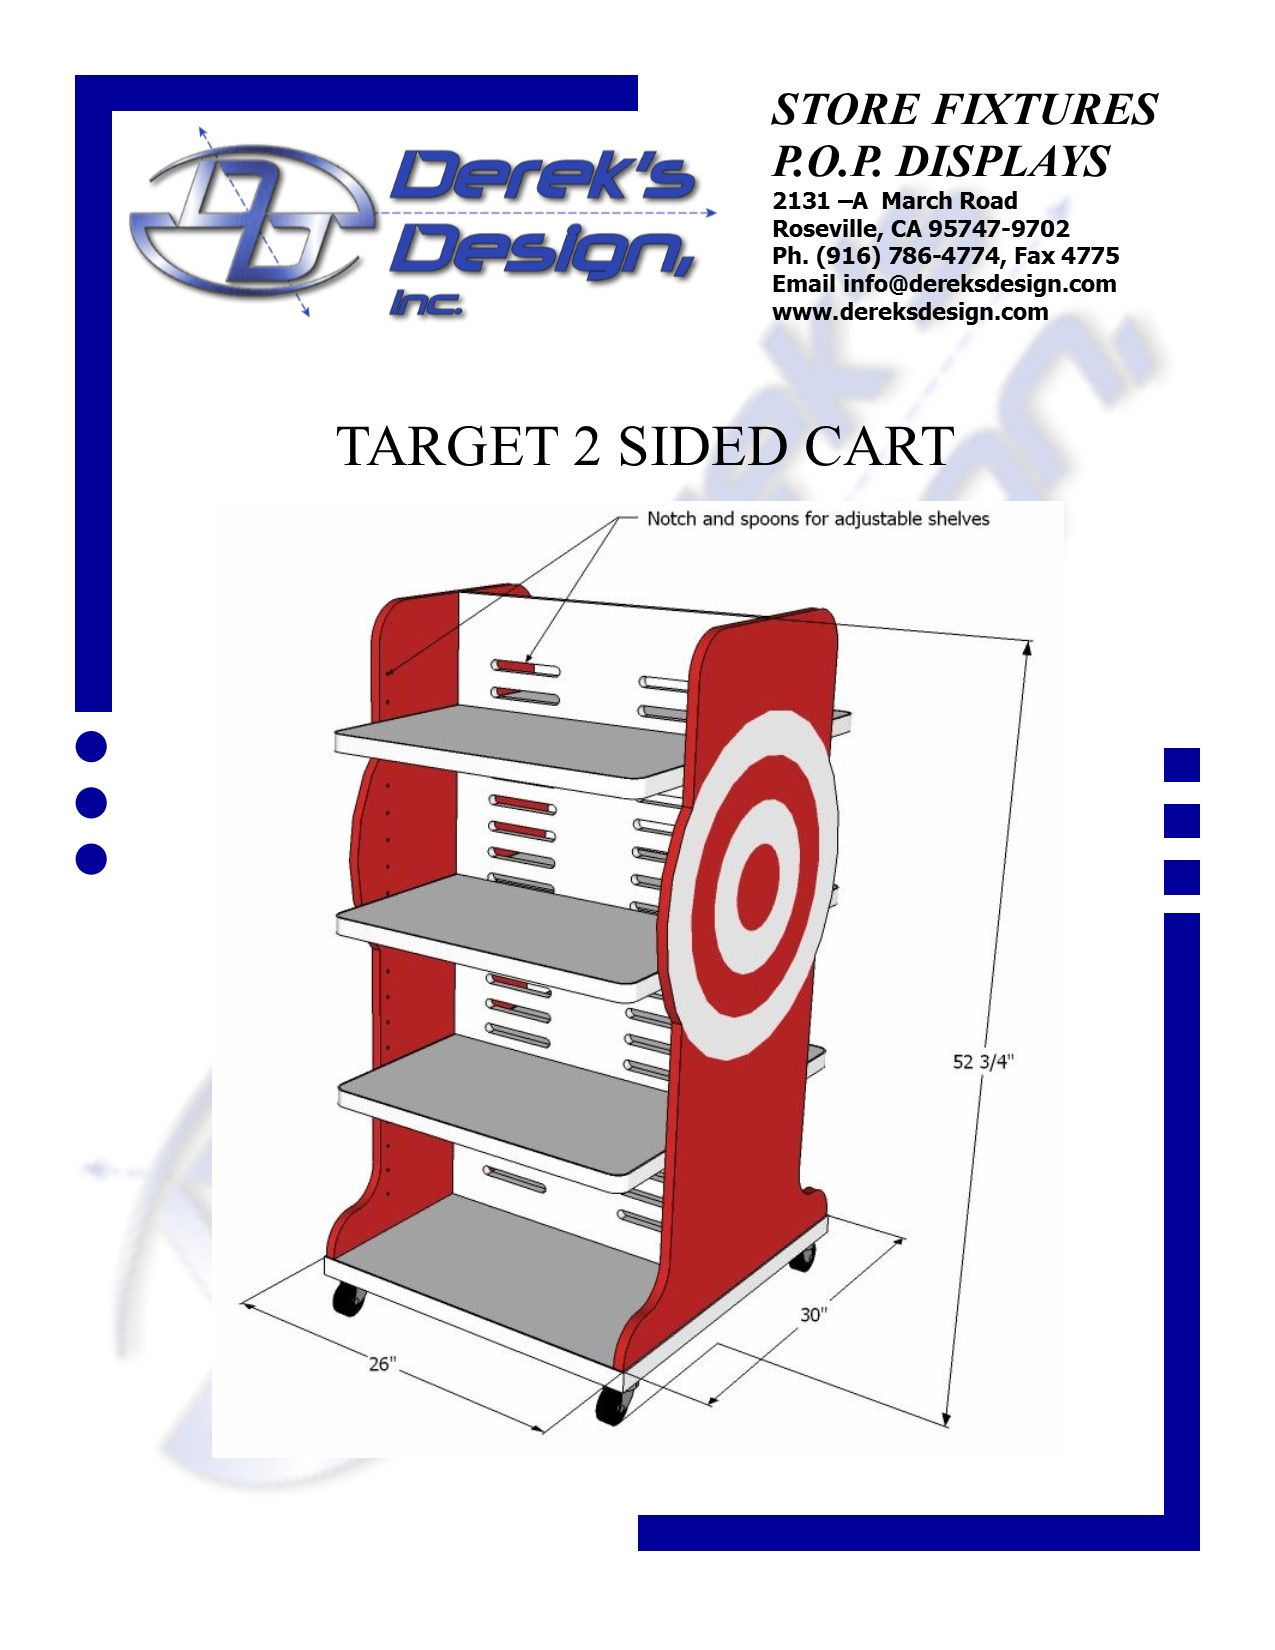 "<A HREF=""MAILTO:ORDERS@DEREKSDESIGN.COM?SUBJECT=Target%202%Sided%20Cart&BODY=http://www.dereksdesign.com/gallery/tables-shop-a-rounds/target-2-sided-cart/"">CLICK HERE FOR INQUIRY </A>"